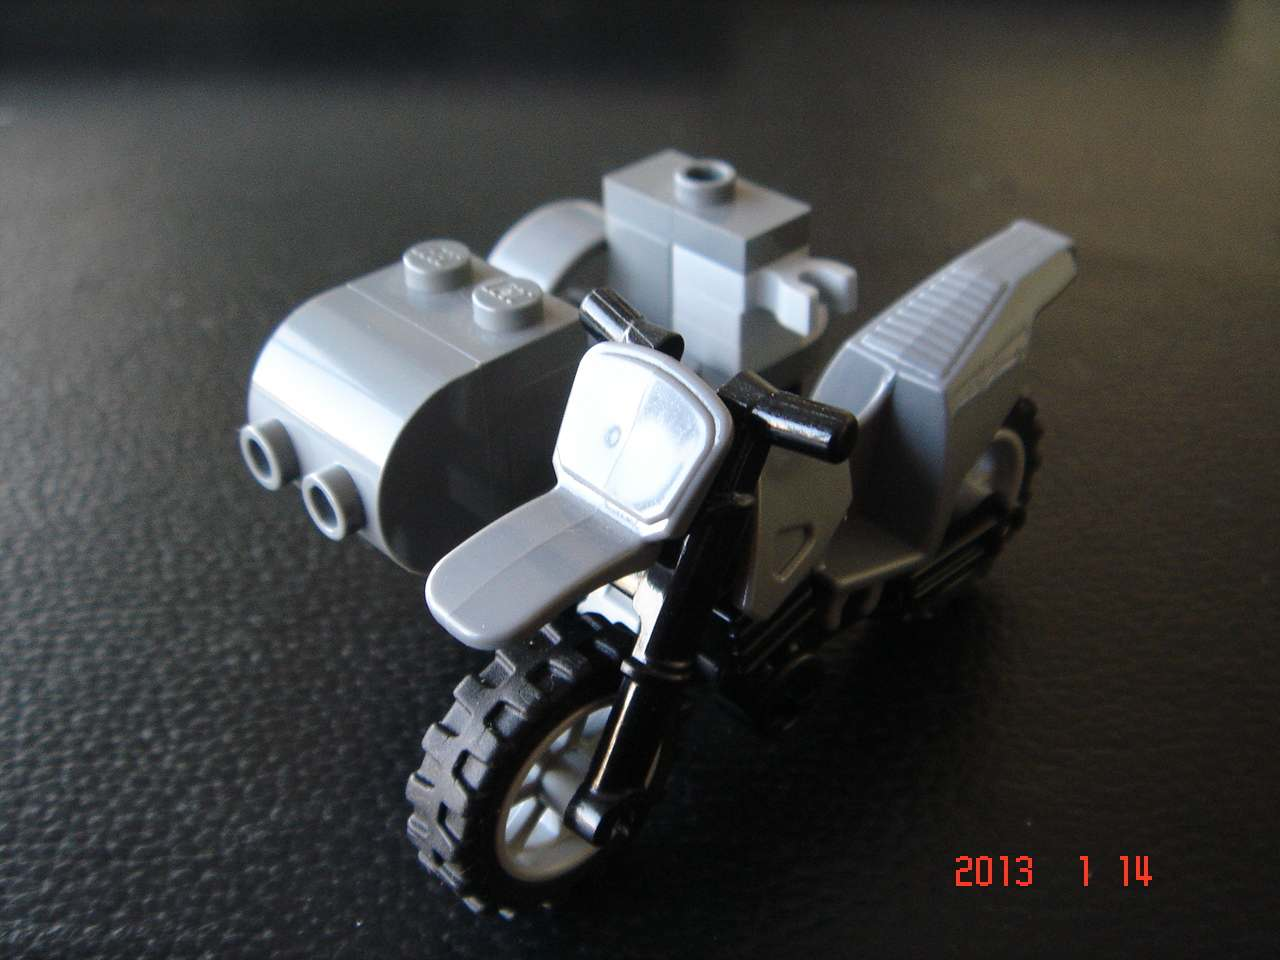 lego_bike_ucc-office_0114008.jpg